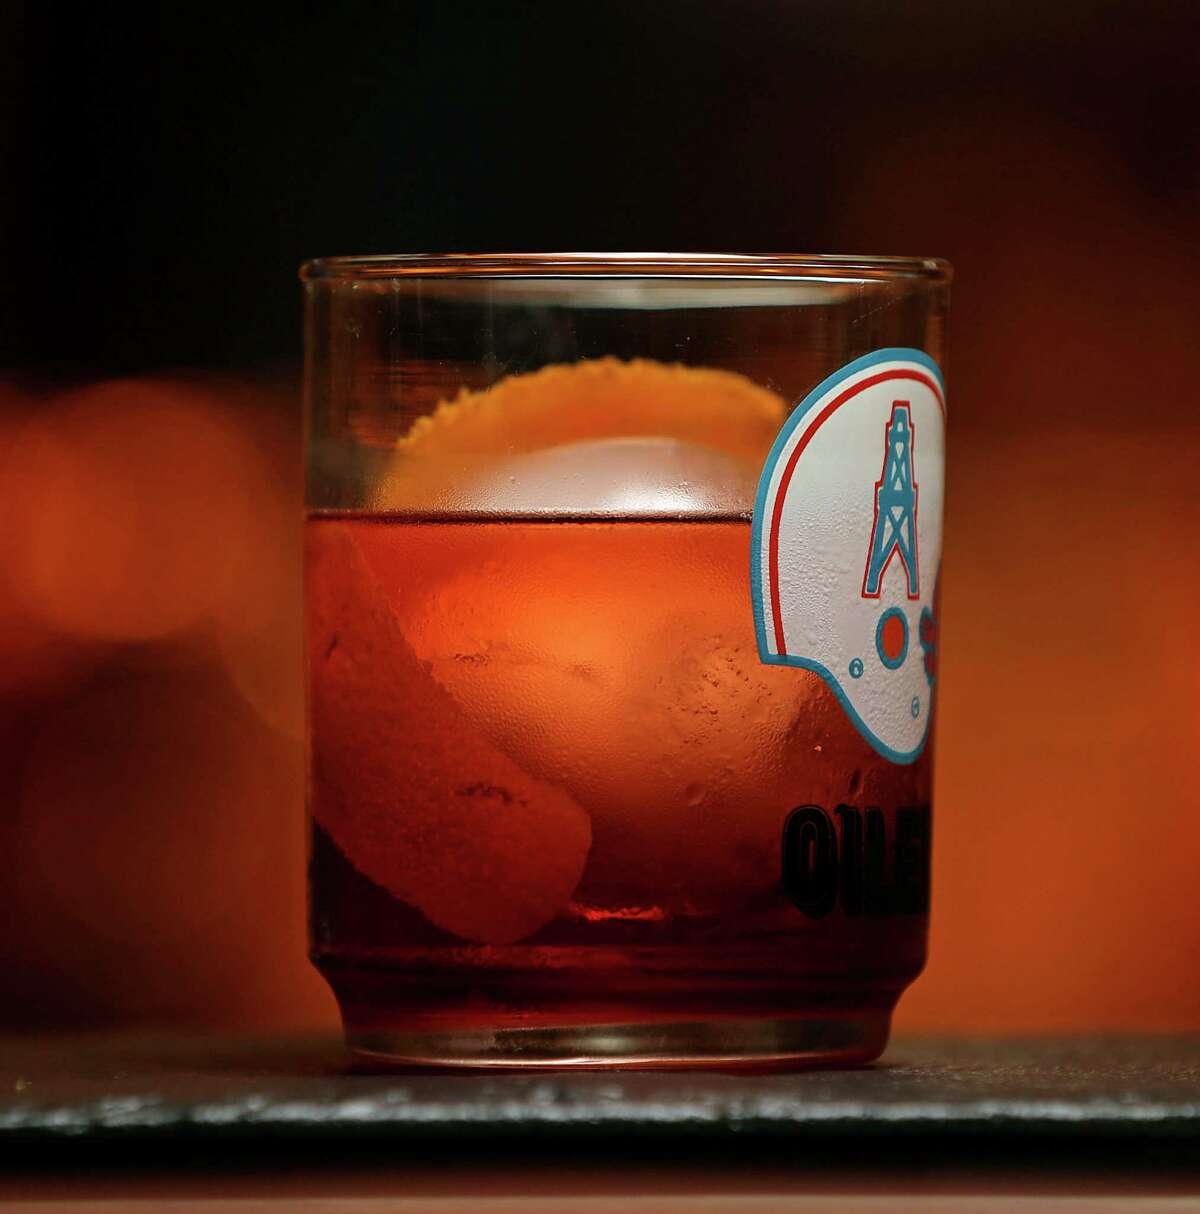 The Boulevardier cocktail (bourbon, Aperol, Carpano Antica) is served on tap at Bayou & Bottle in the Four Seasons Hotel Houston opening Jan. 21. The bar serves its cocktails in assorted vintage glassware.